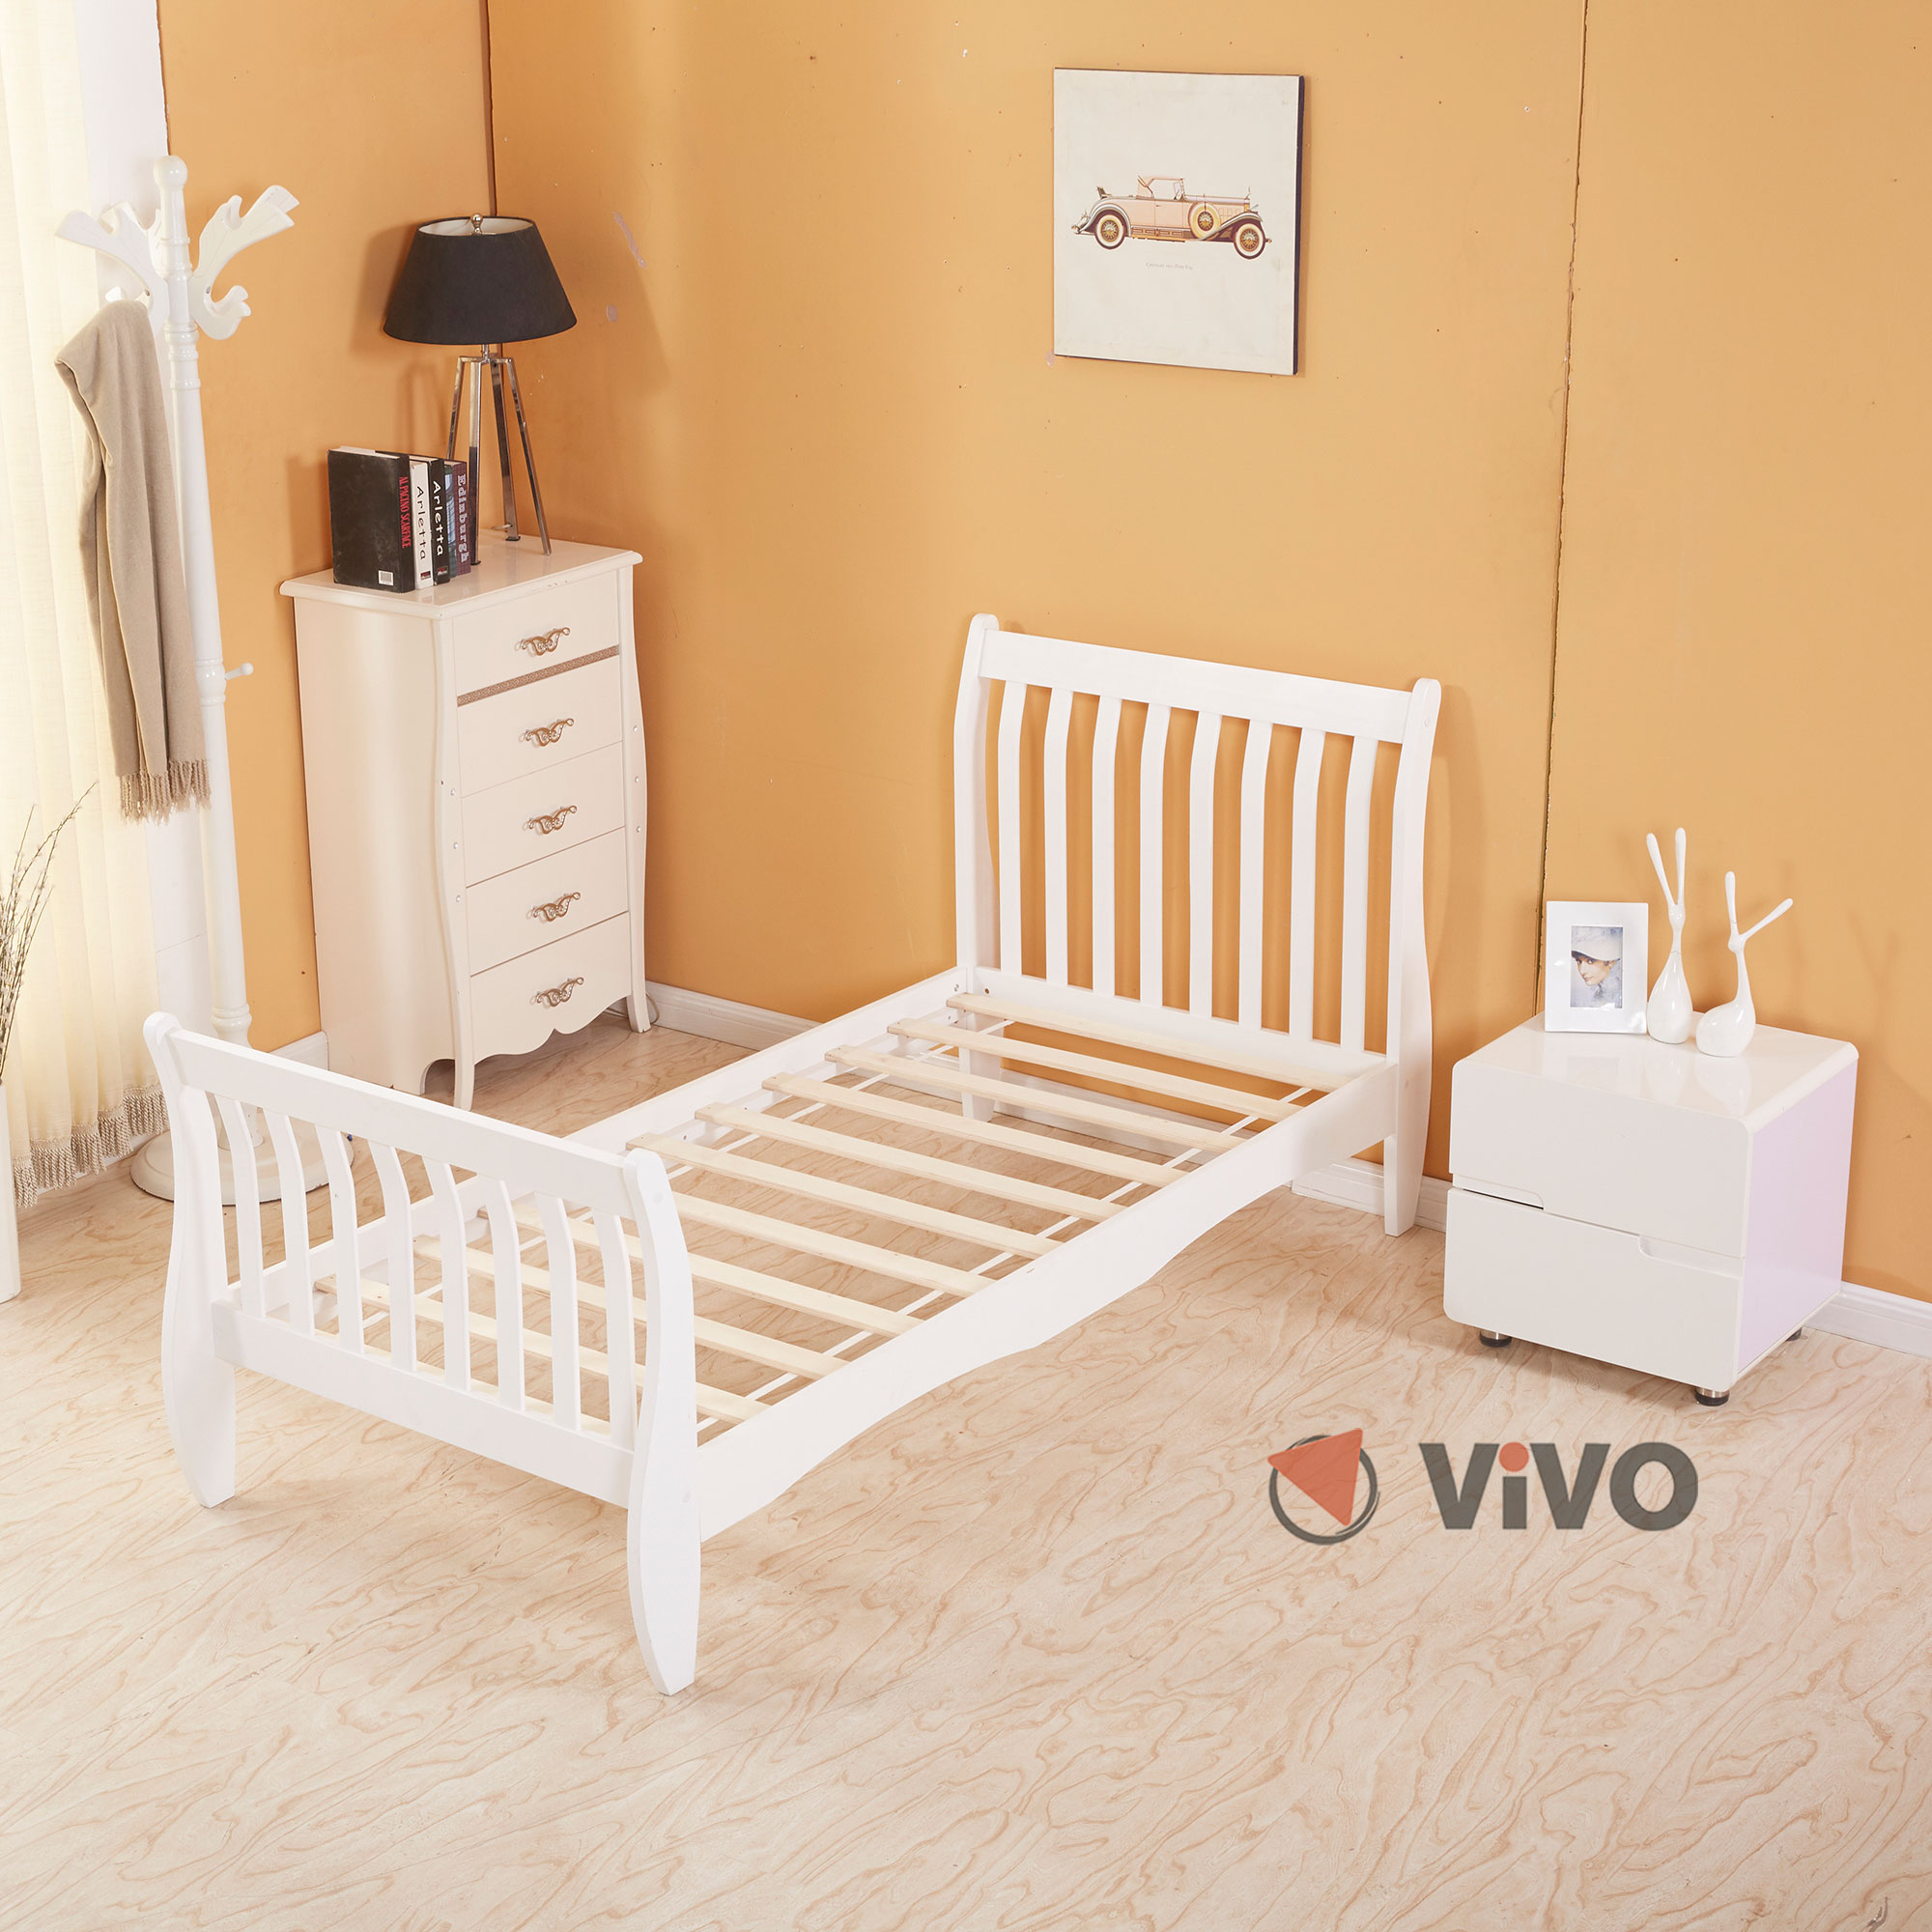 3ft single wooden sleigh bed frame pine bedroom furniture - White and wood bedroom furniture ...